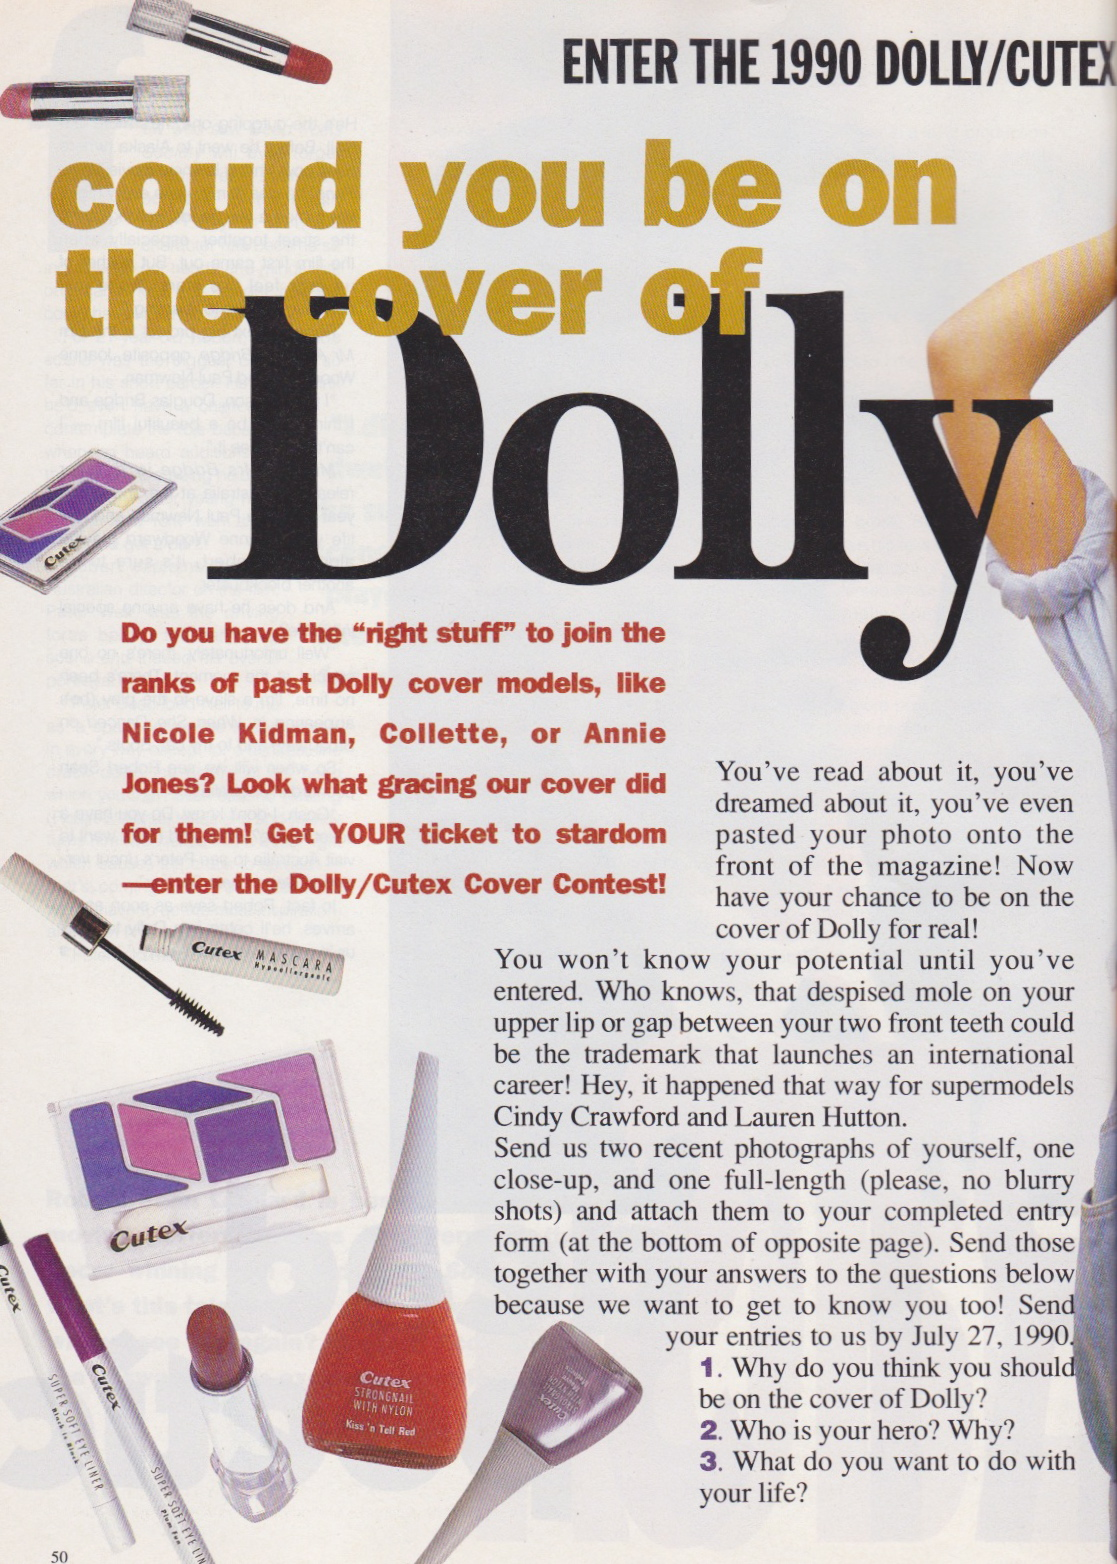 Dolly Covergirl Competition | 1990 Entry Form 01.jpeg